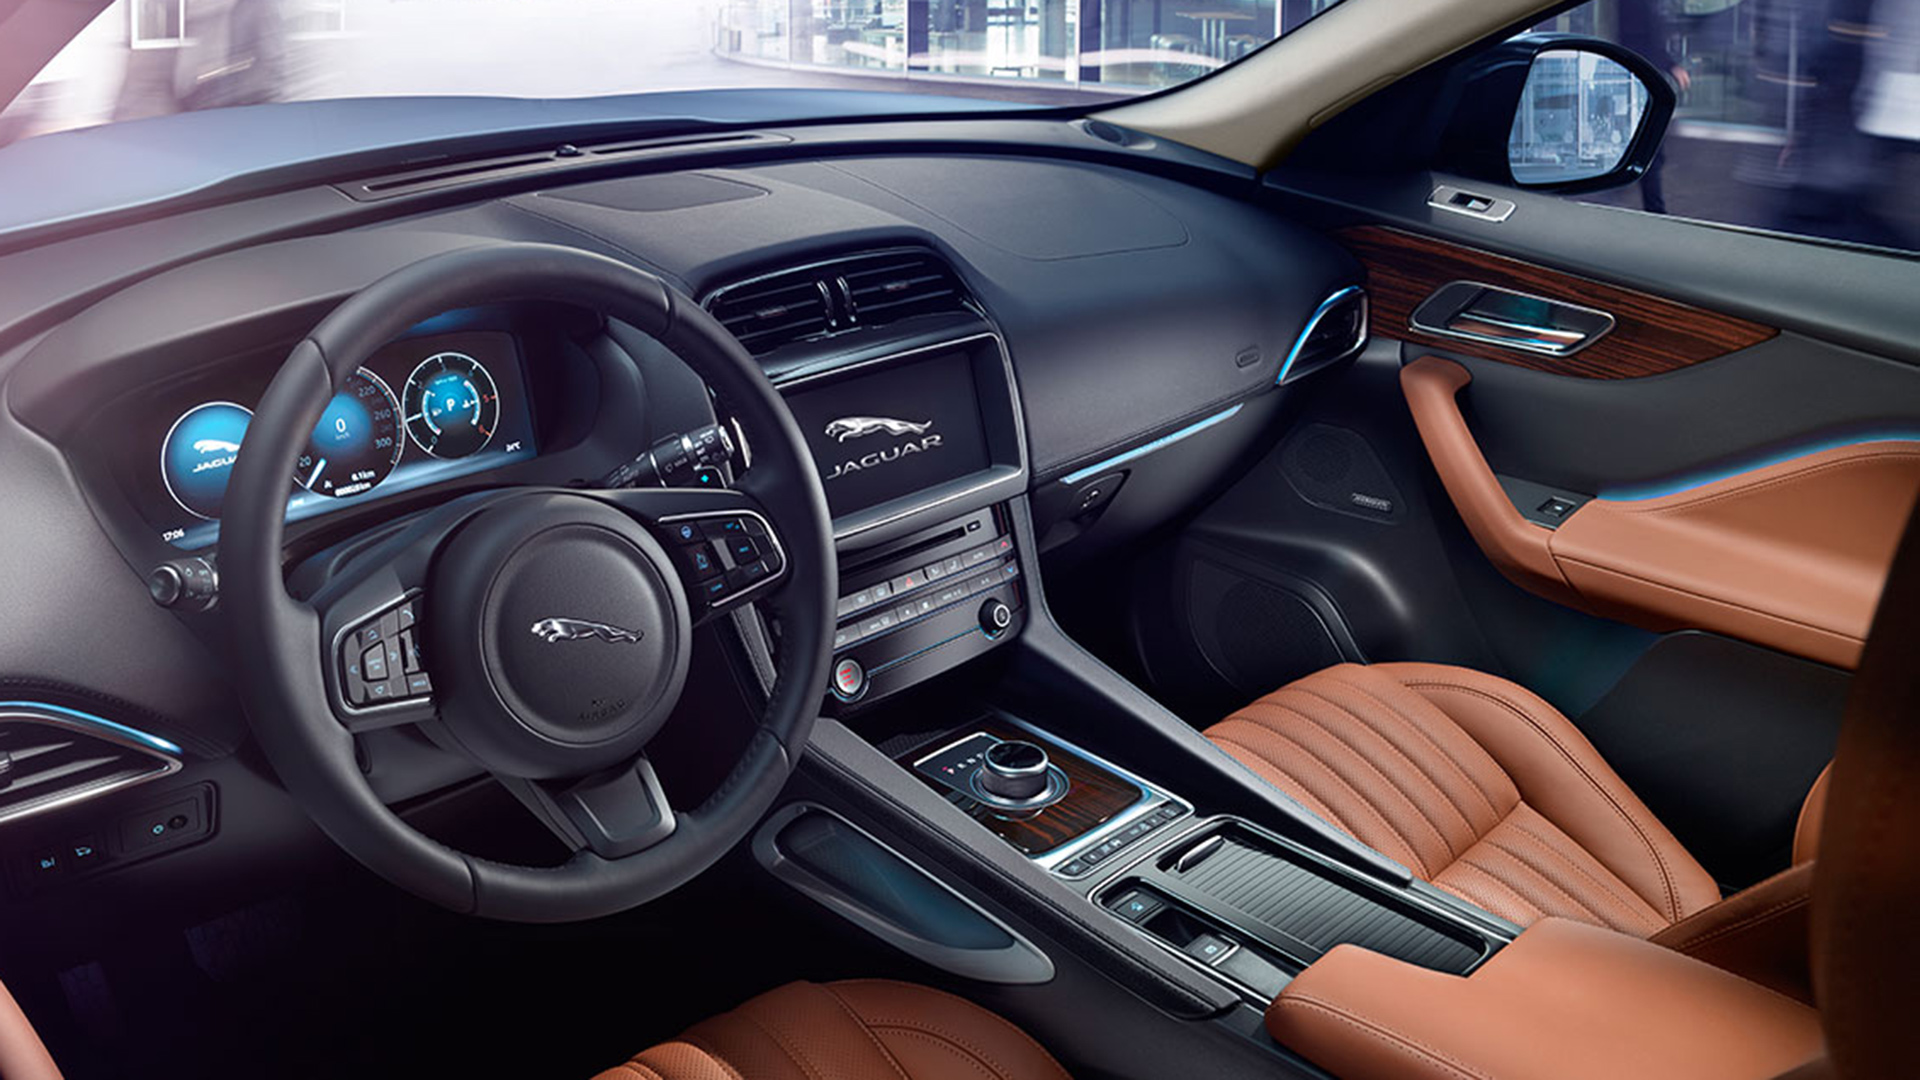 Jip Interieur The Jaguar F-pace Is A Sexy Suv Beast | Gq India | Gq